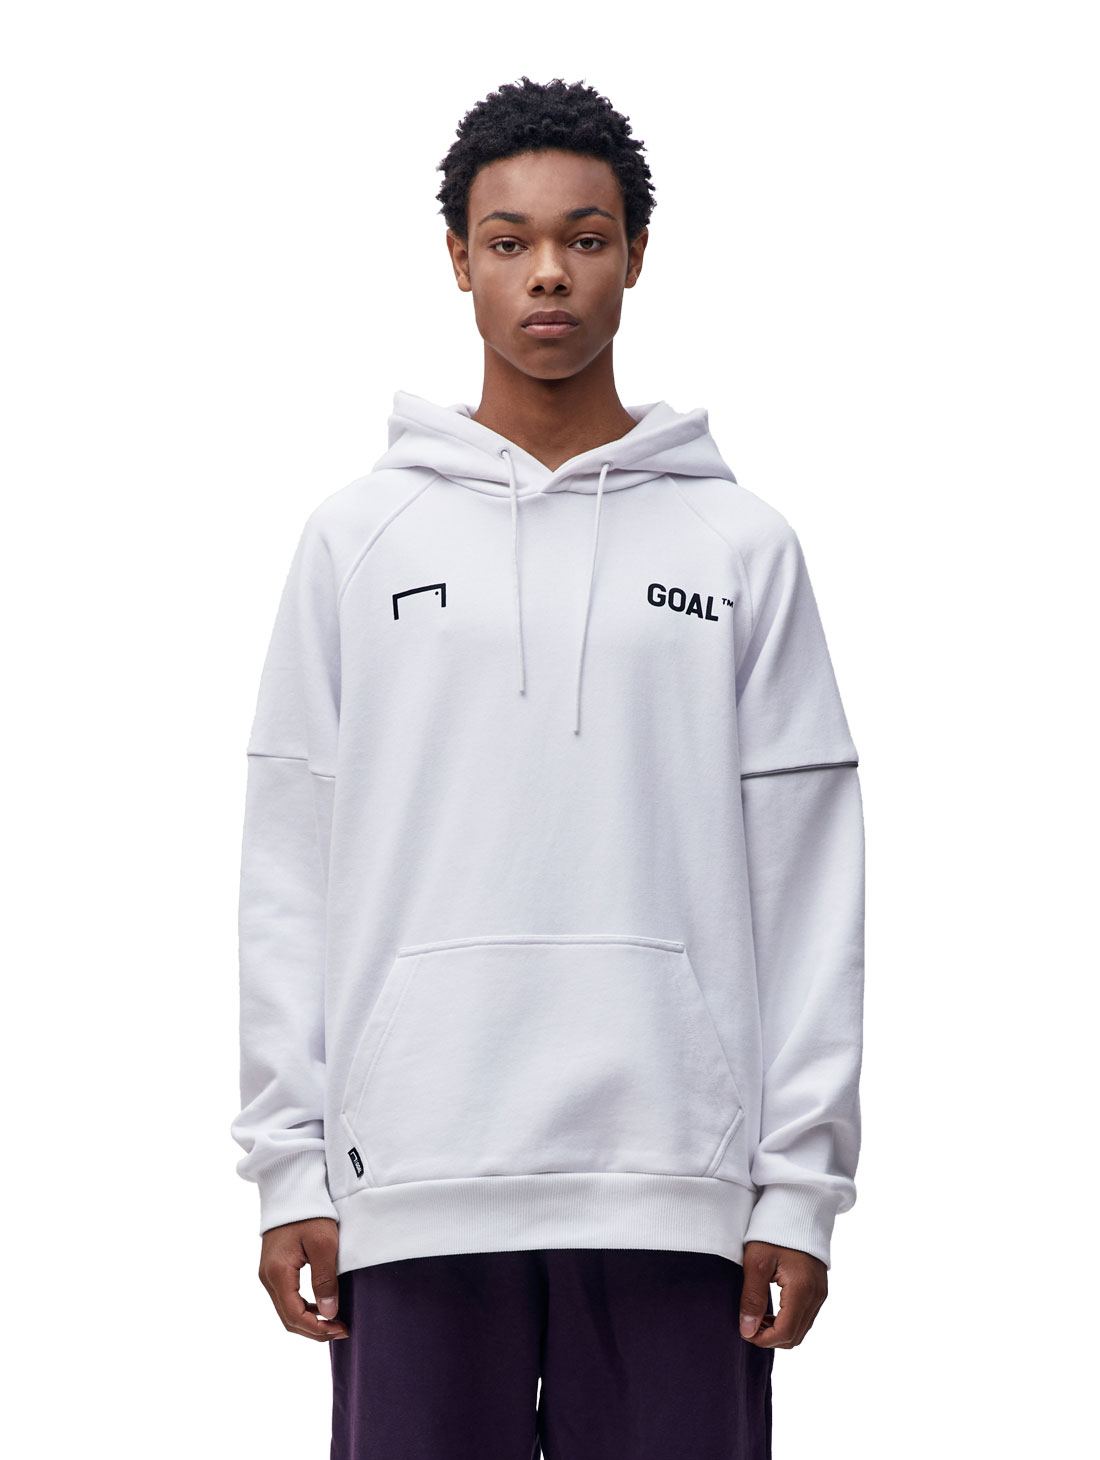 GOALSTUDIO RESPECT HOODIE - WHITE